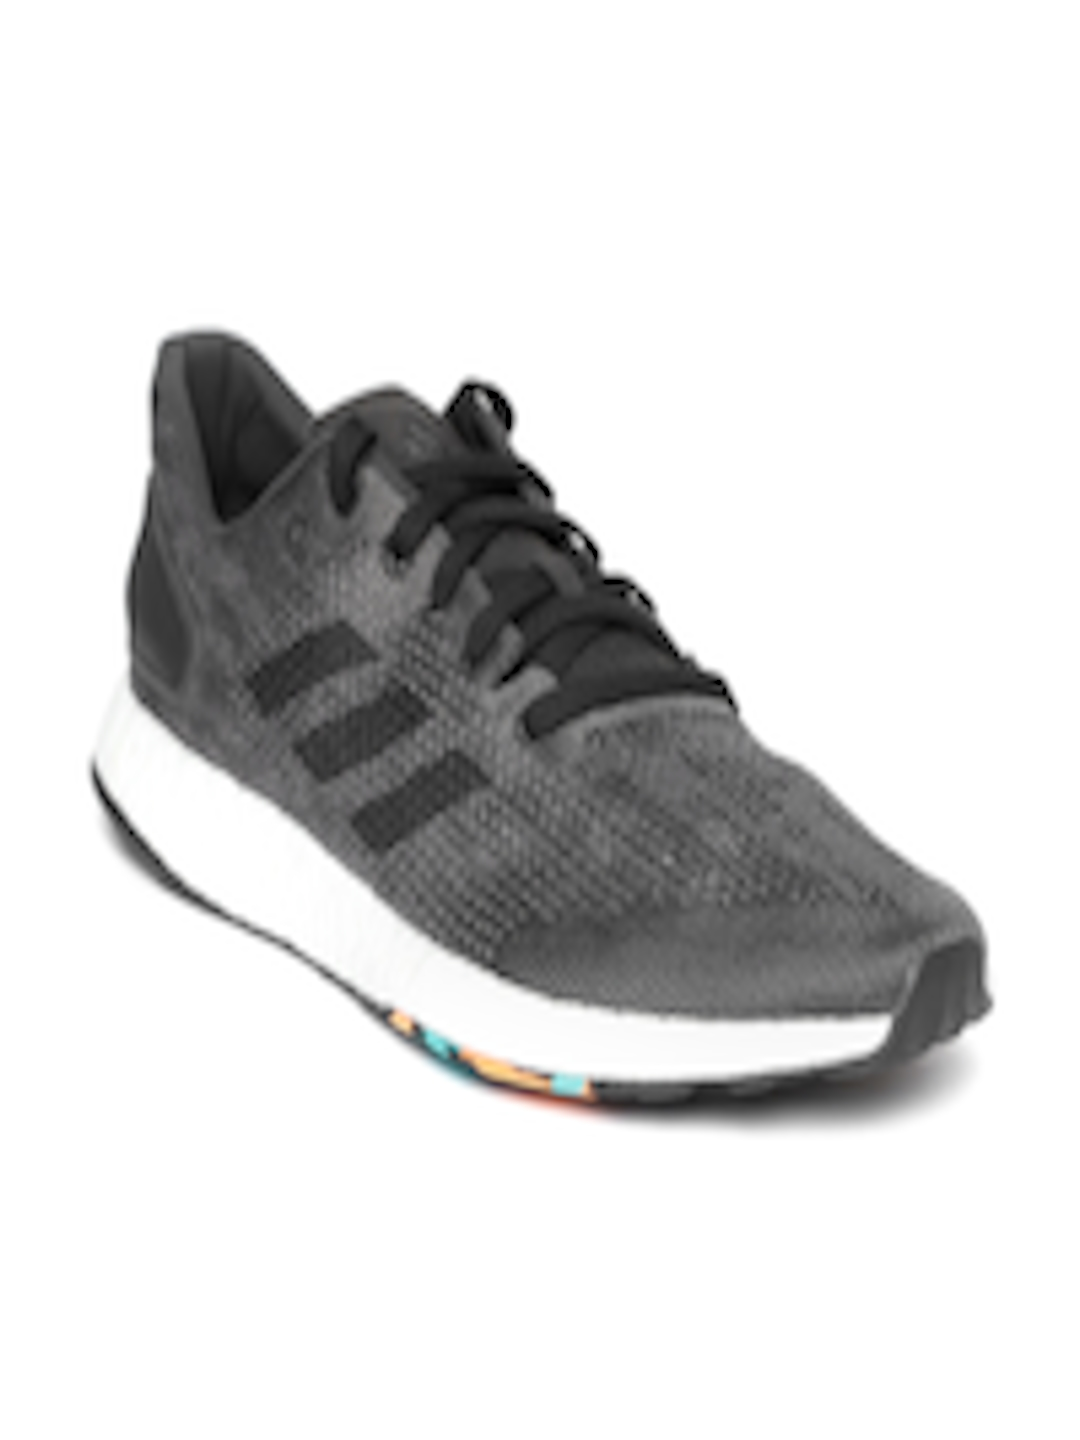 72407bd5a5a4dd Buy ADIDAS Men Charcoal Grey PureBoost DPR Running Shoes - Sports Shoes for  Men 6842080